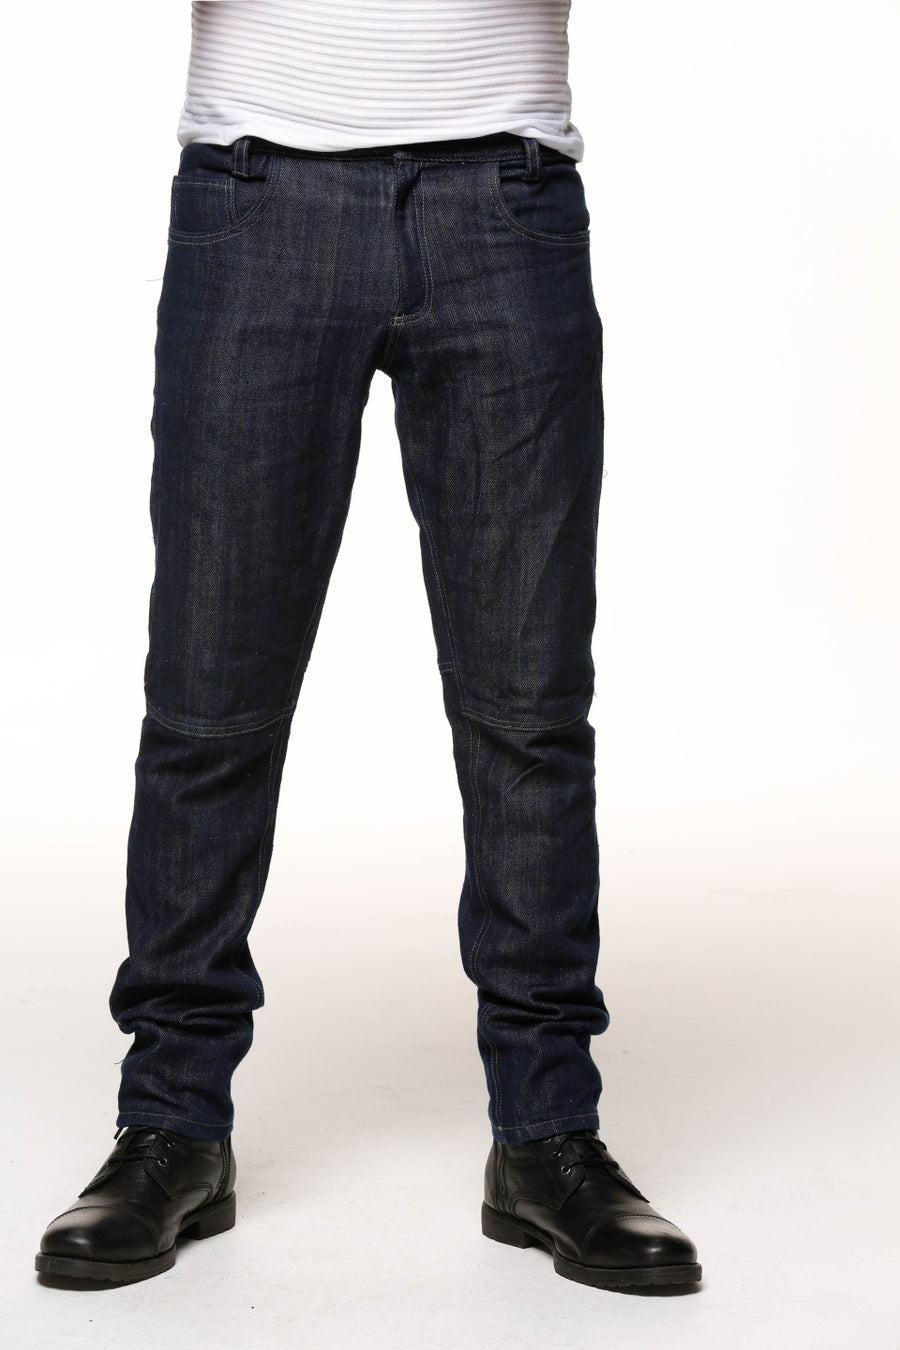 Image of Classic Mens Denim Jeans